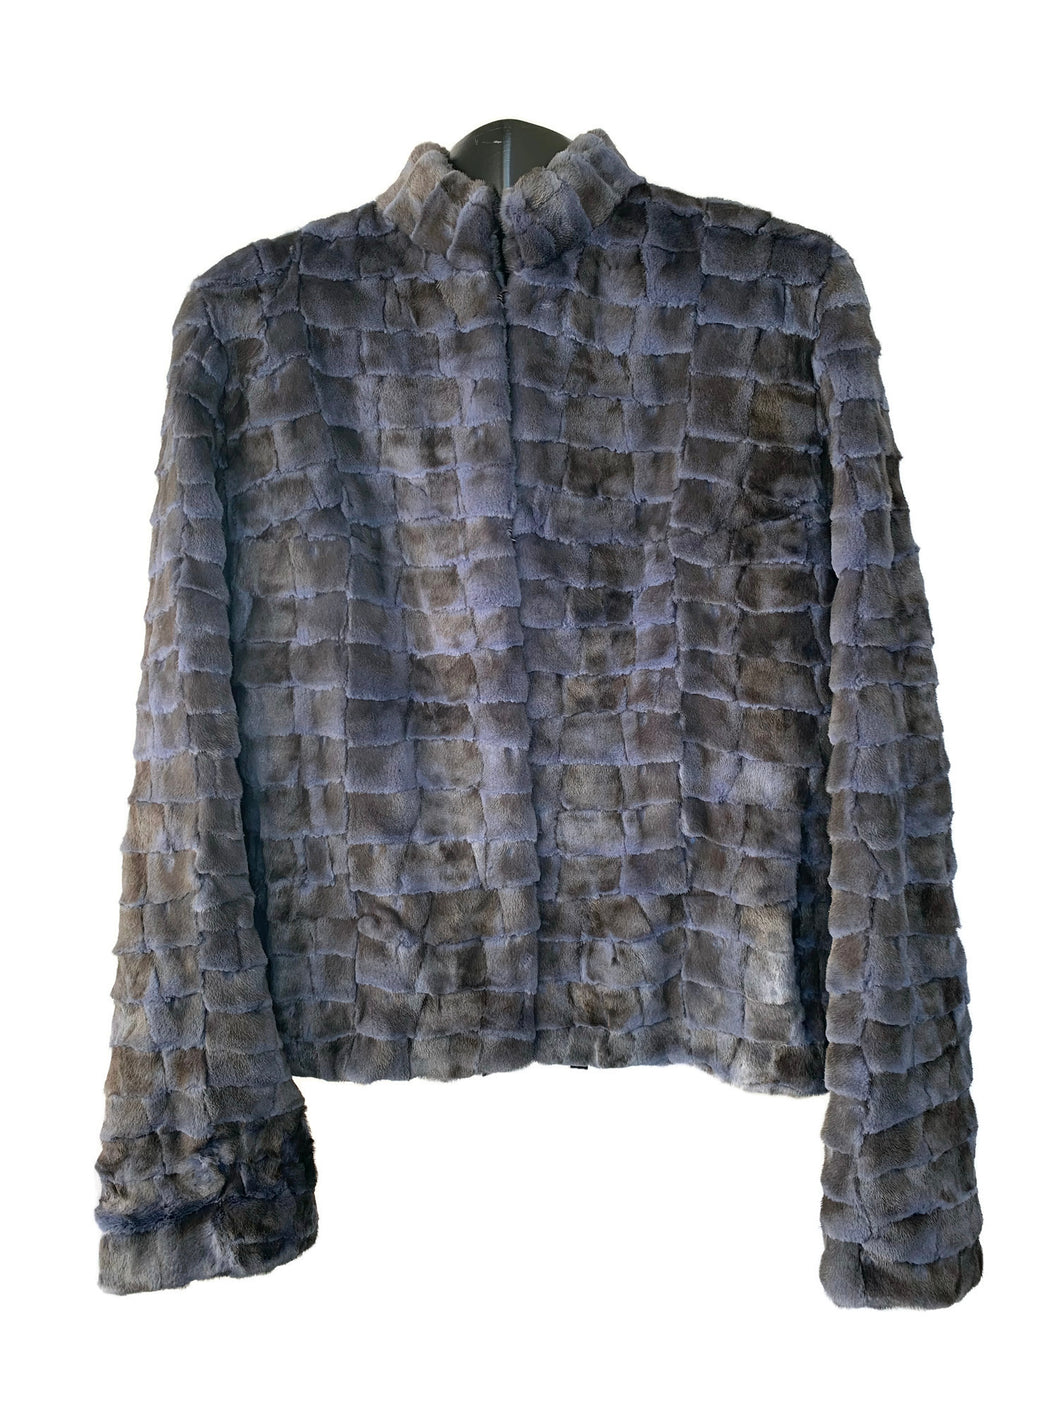 Blue Denim Sculptured Sheared Mink Jacket